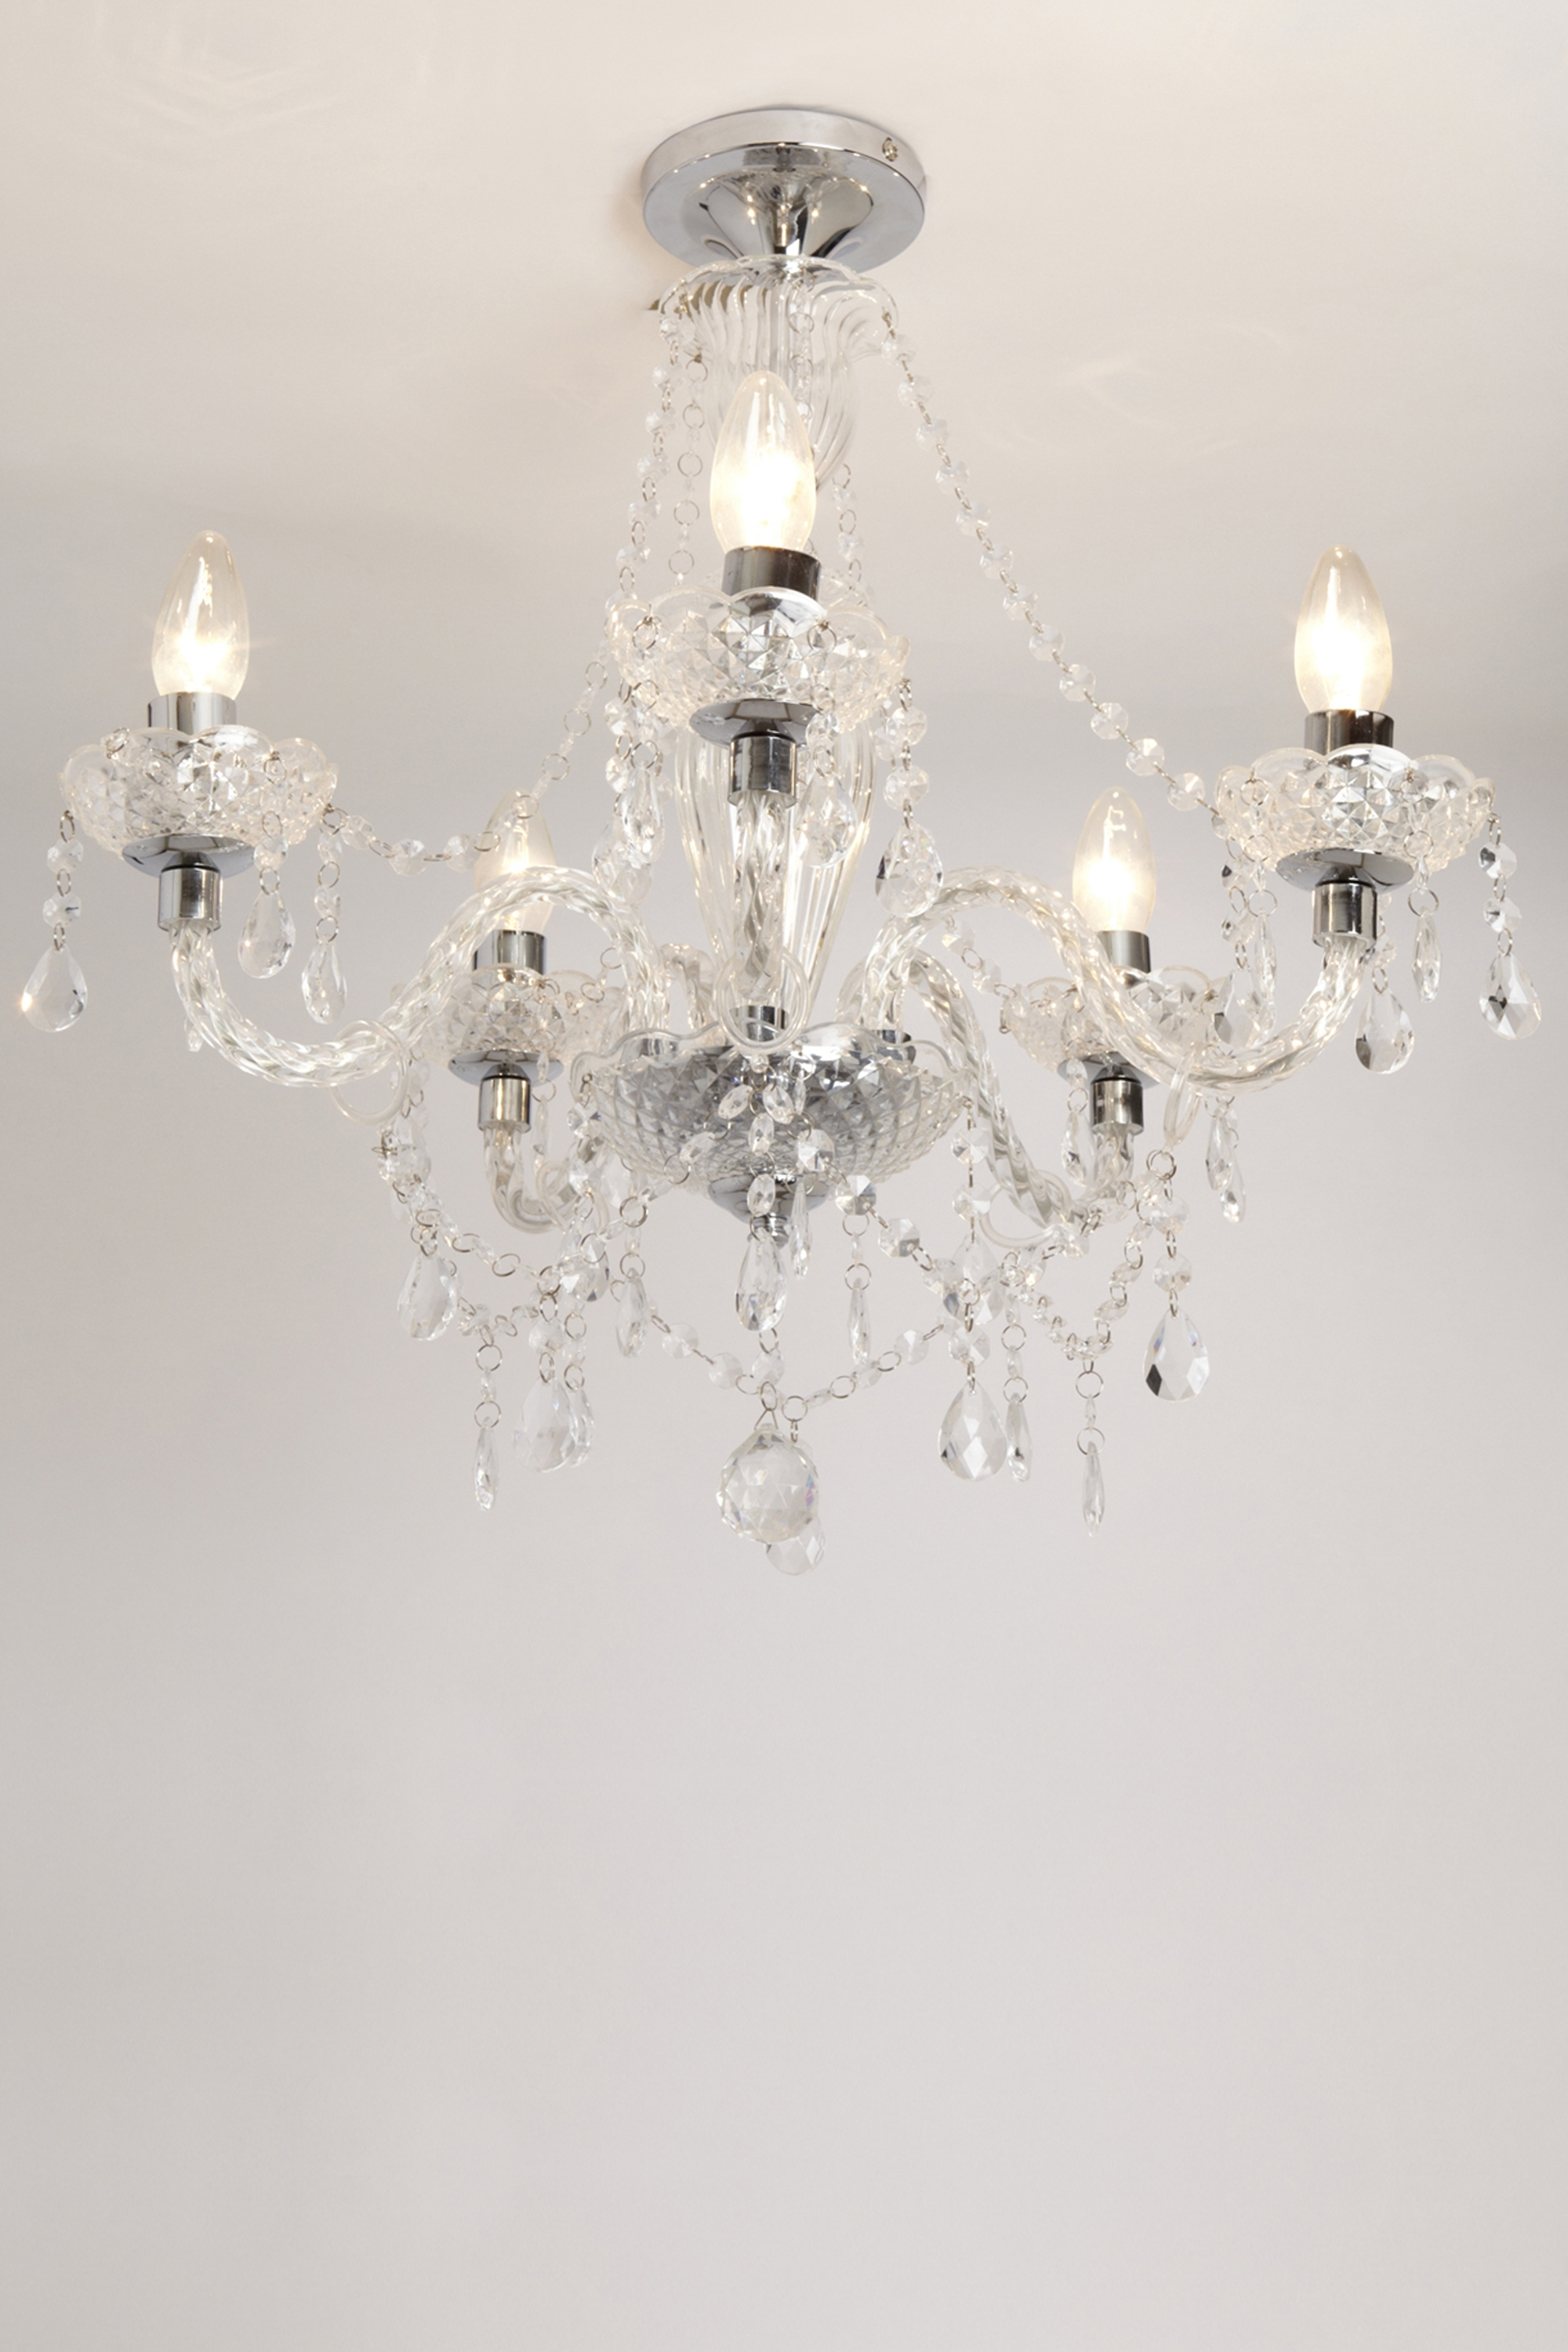 Flush Fitting Chandelier Throughout Most Popular Sapparia 5 Light Flush Chandelier Bhs, £60 (Was £120), Living (View 3 of 15)